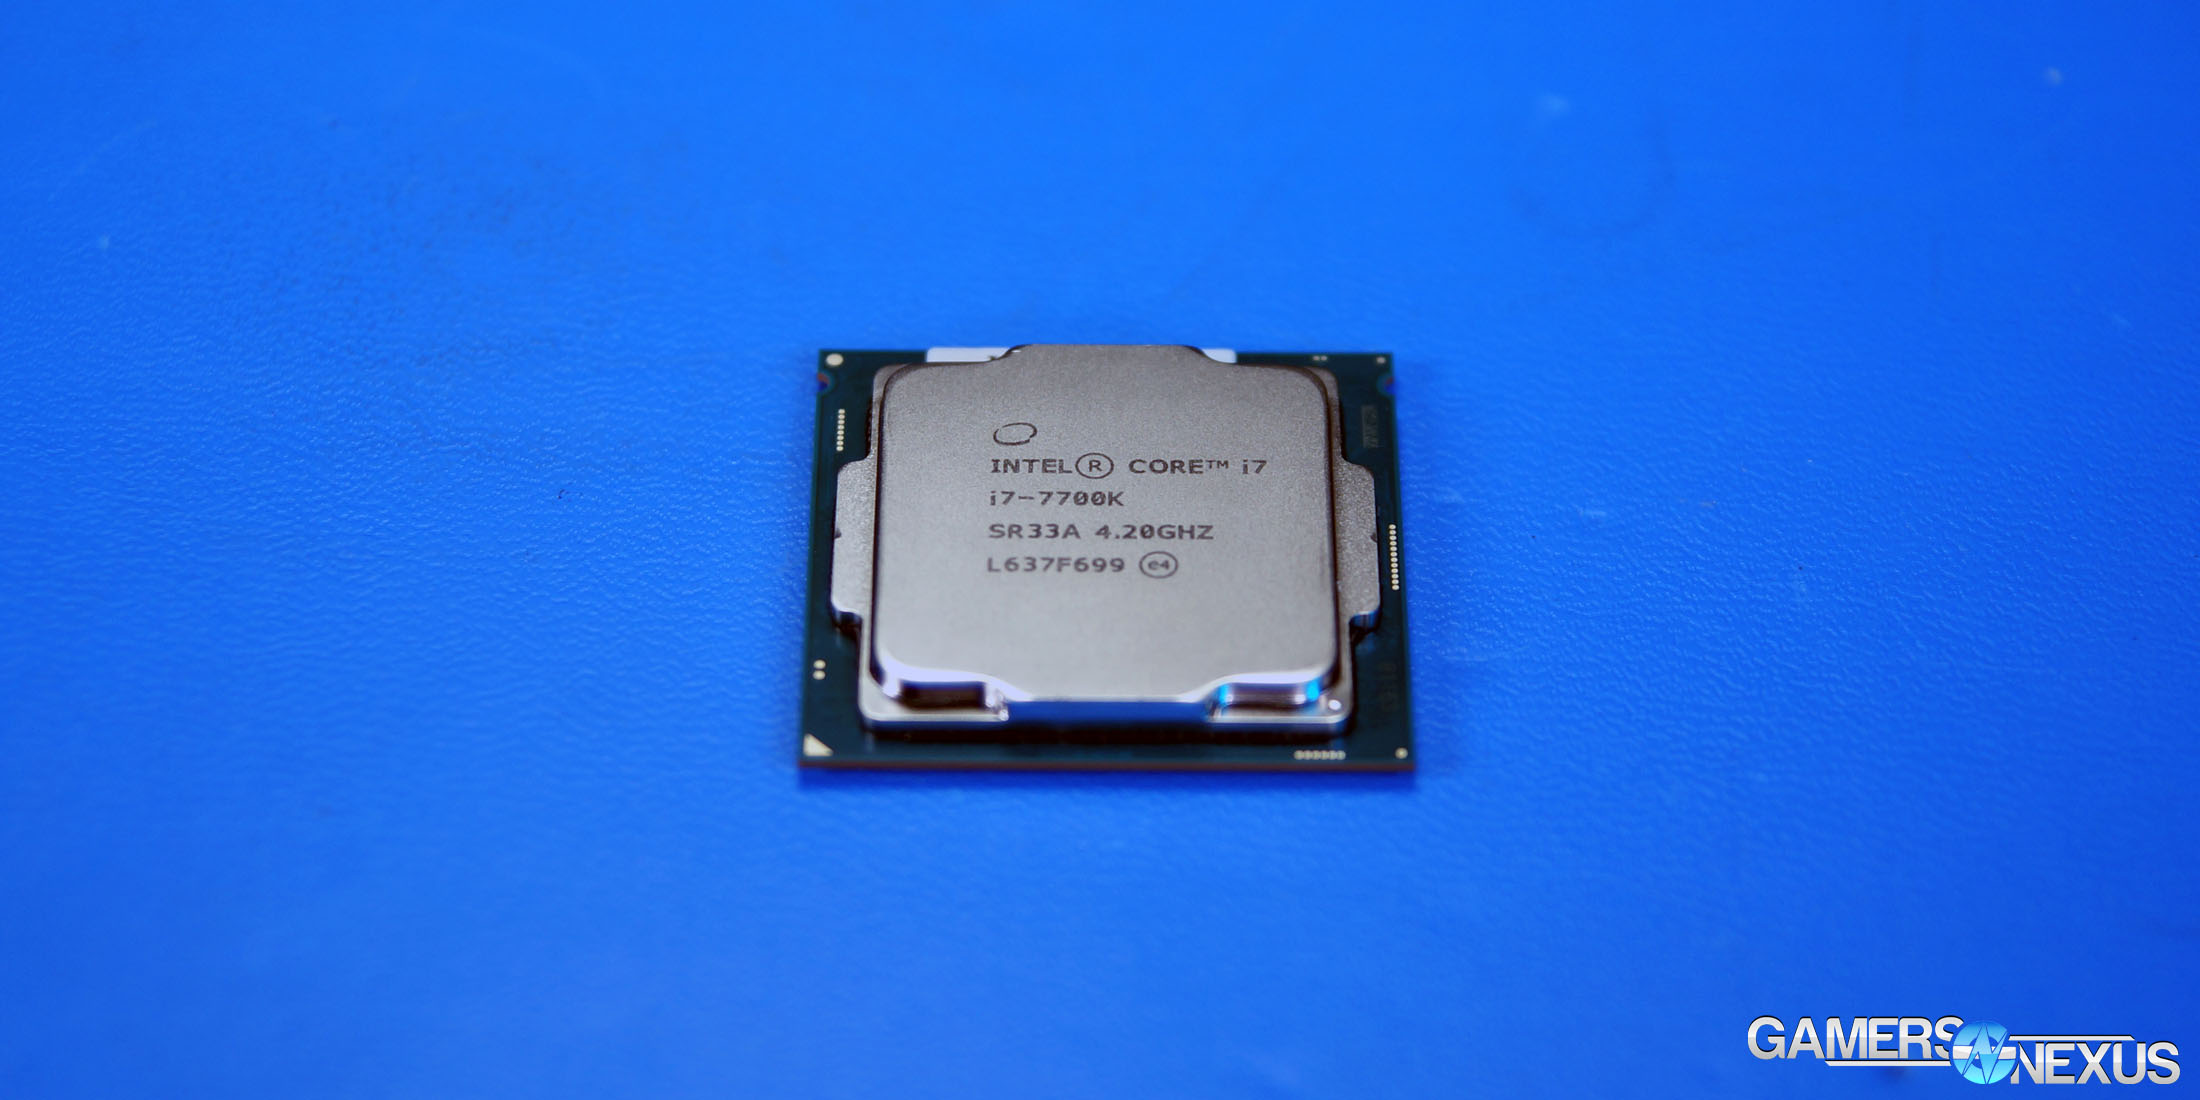 Intel i7-7700K Review: Gaming, Rendering, Temps, & Overclocking